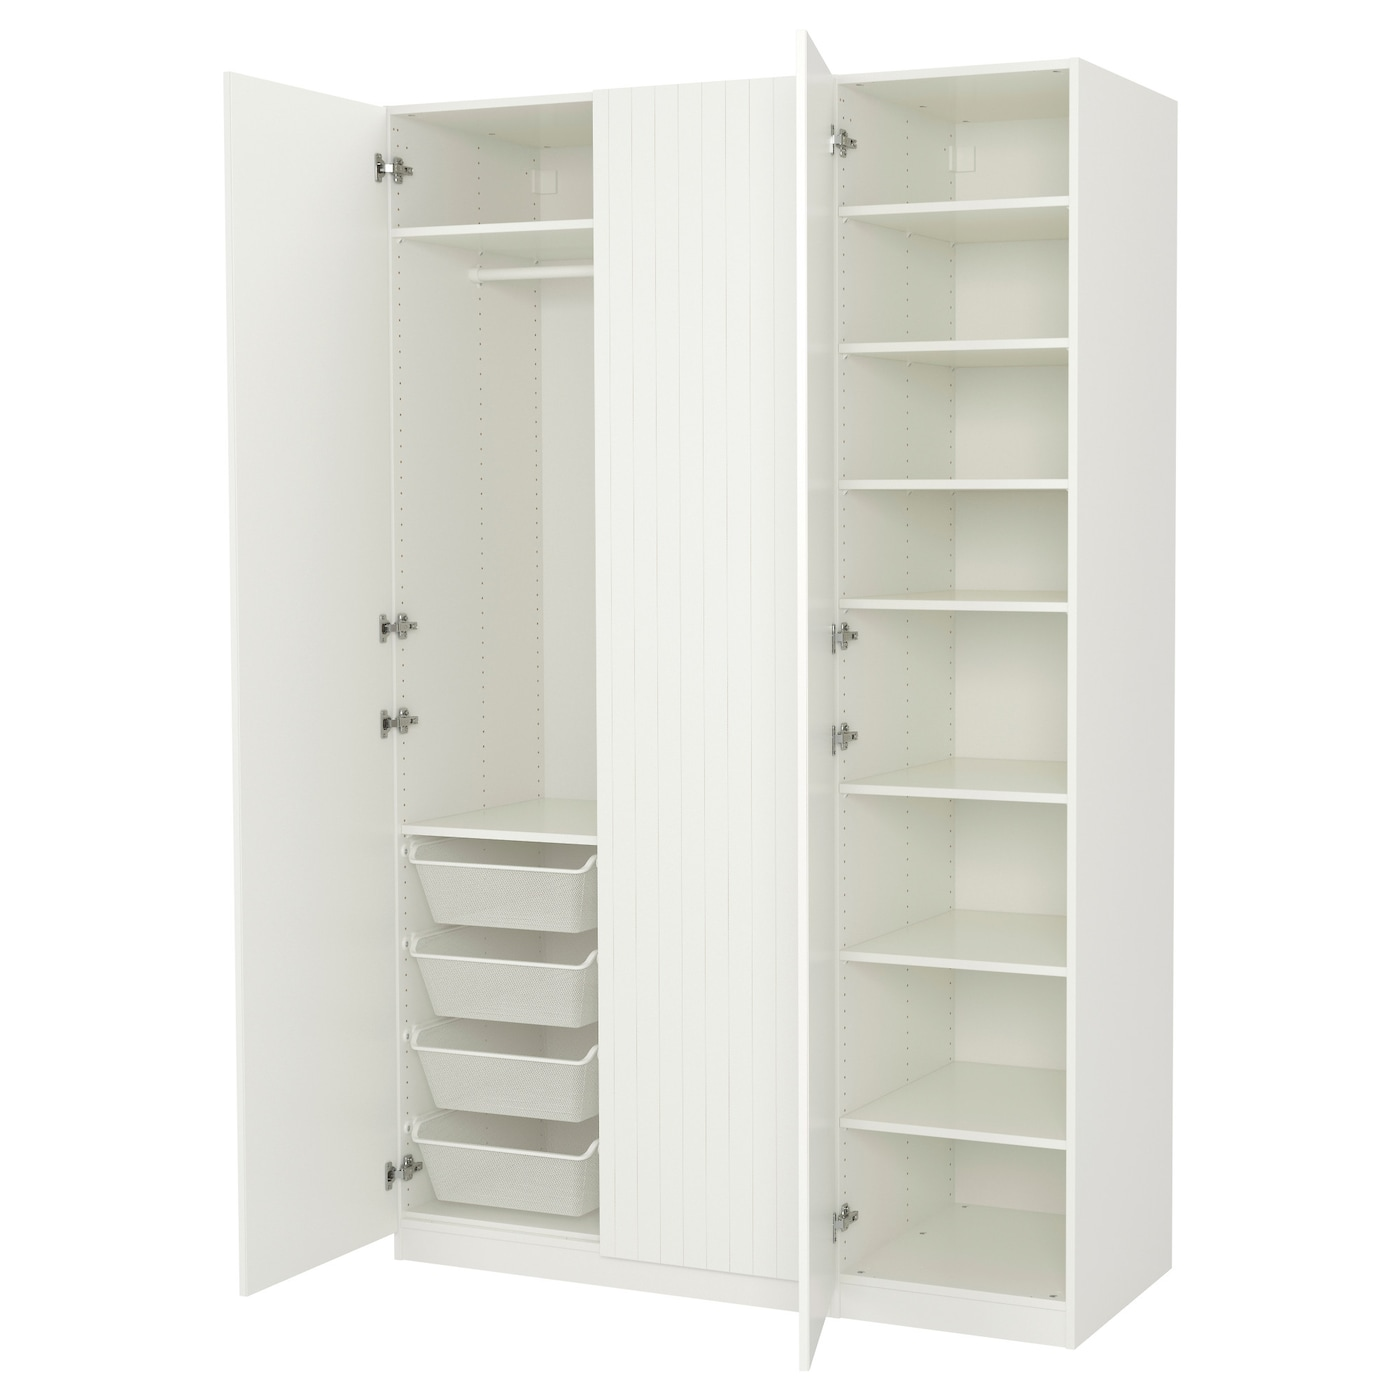 Pax wardrobe white marnardal striped white beige 150x60x236 cm ikea - Rangement dressing ikea ...